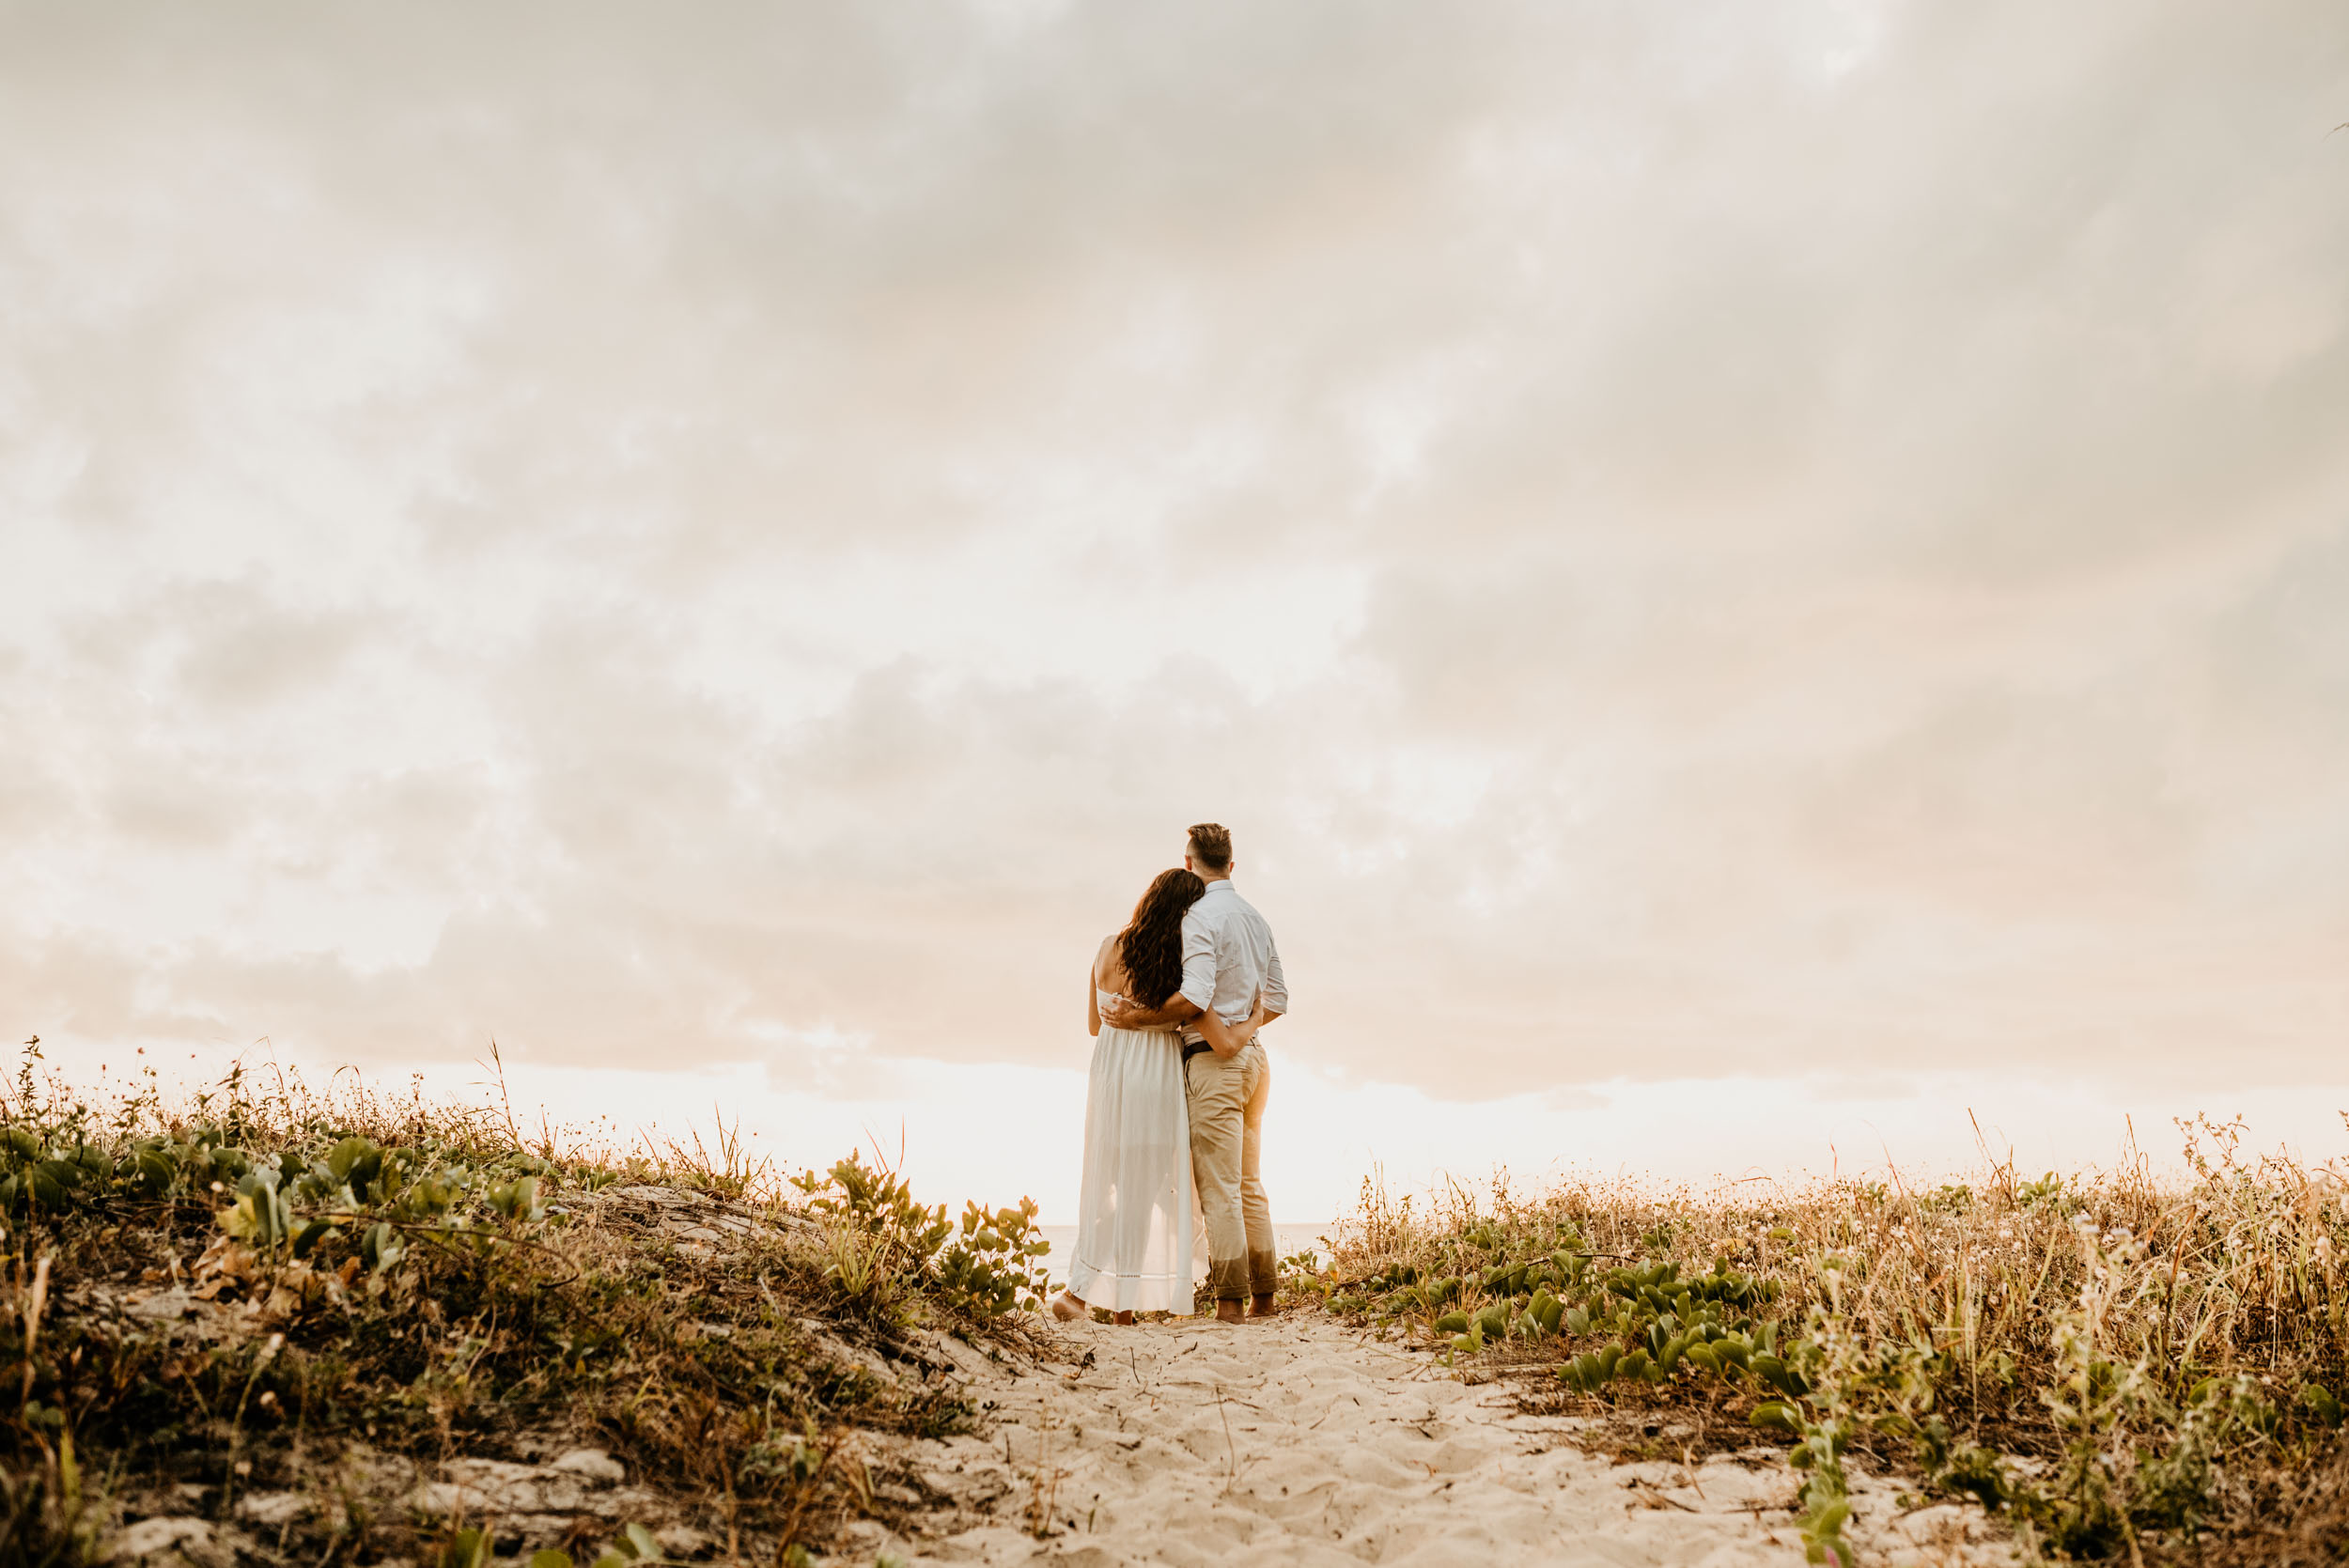 The Raw Photographer - Cairns Wedding Photographer - Engaged Engagement - Beach location - Candid Photography Queensland-26.jpg